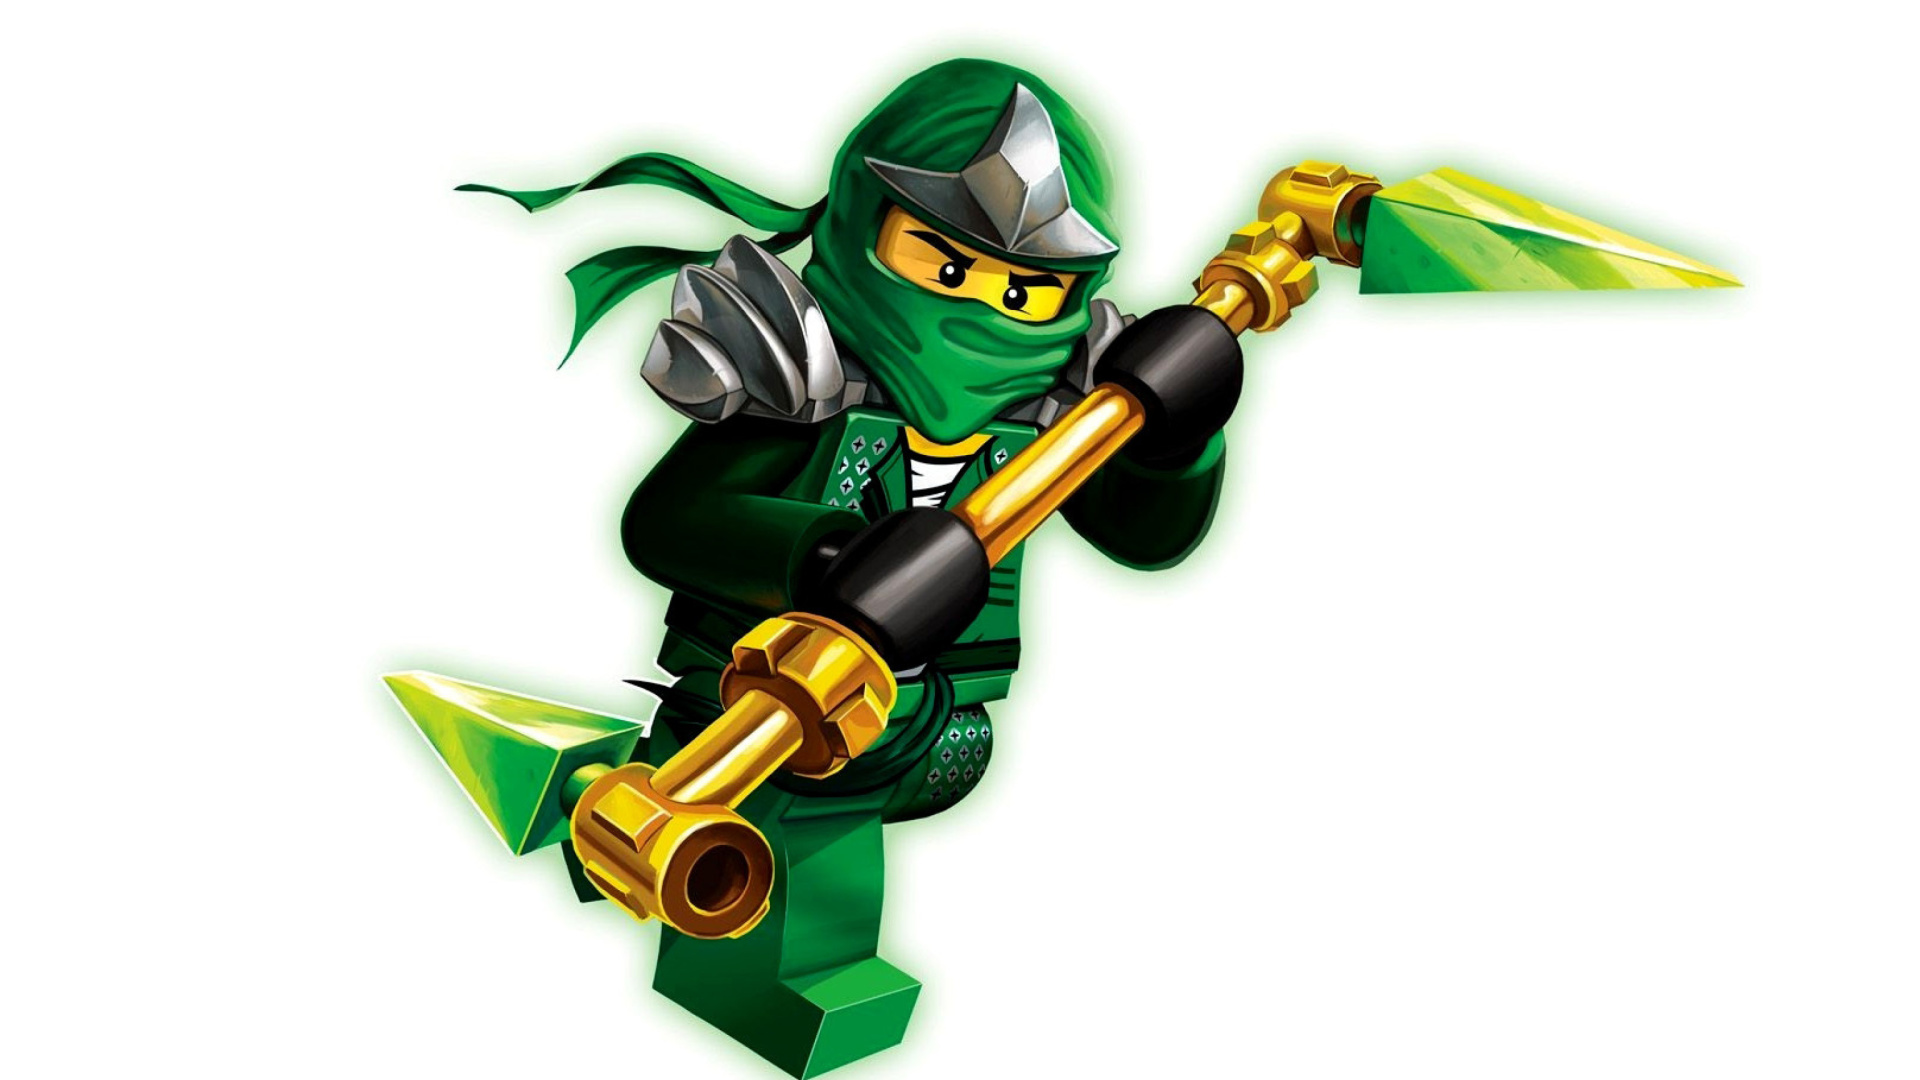 Lego ninjago wallpaper for 1920x1080 - Ninjago phone wallpaper ...